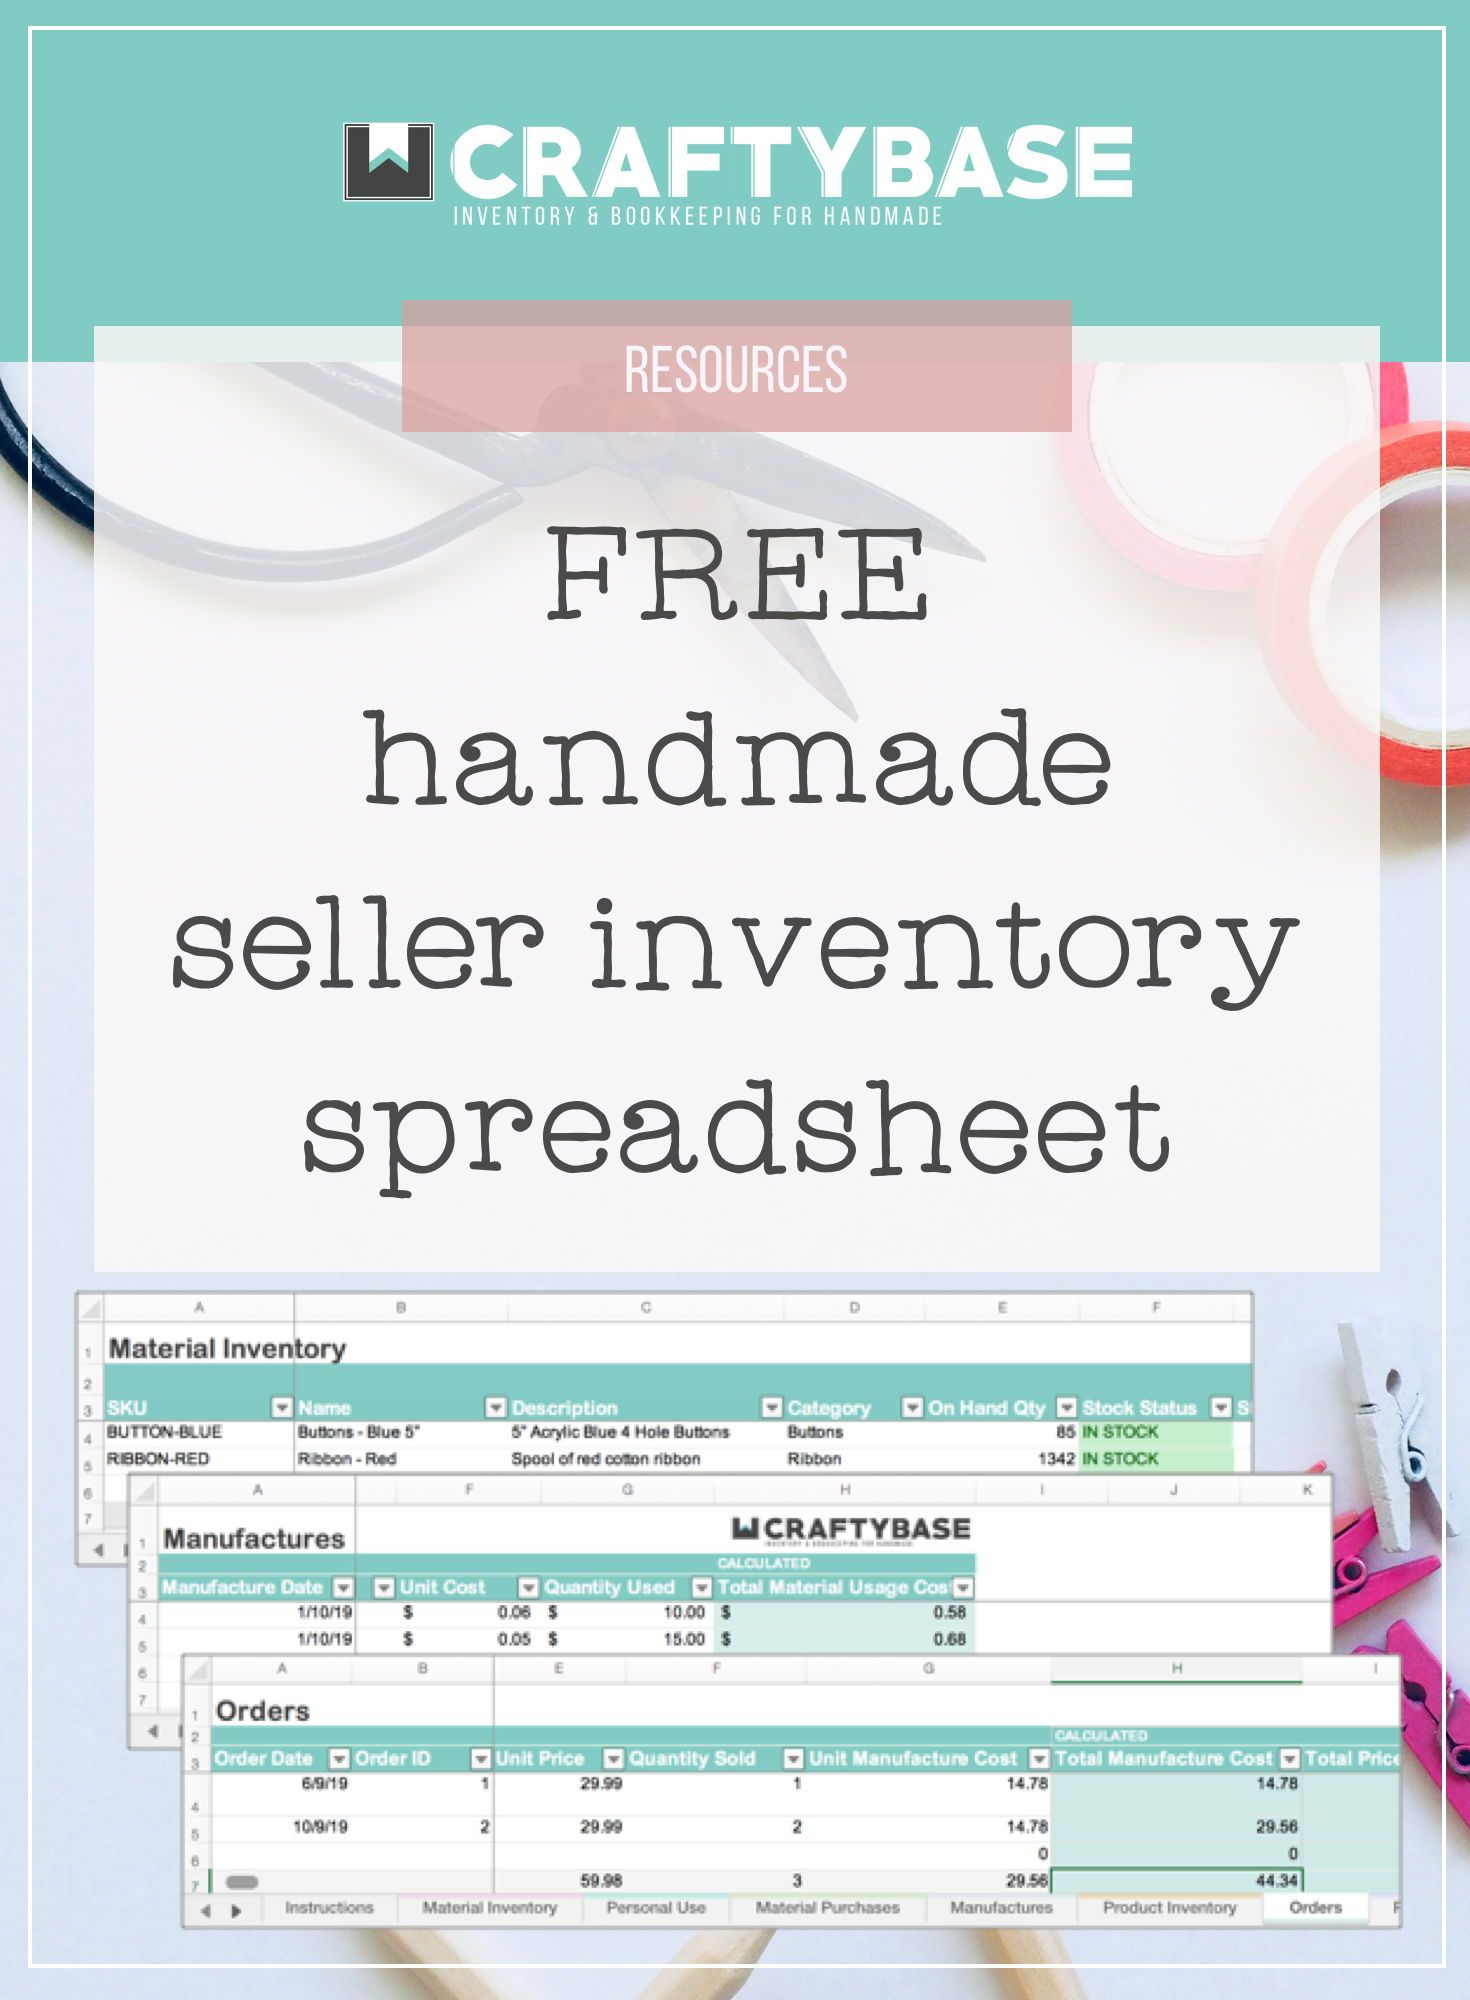 Our FREE etsy seller spreadsheet is designed completely